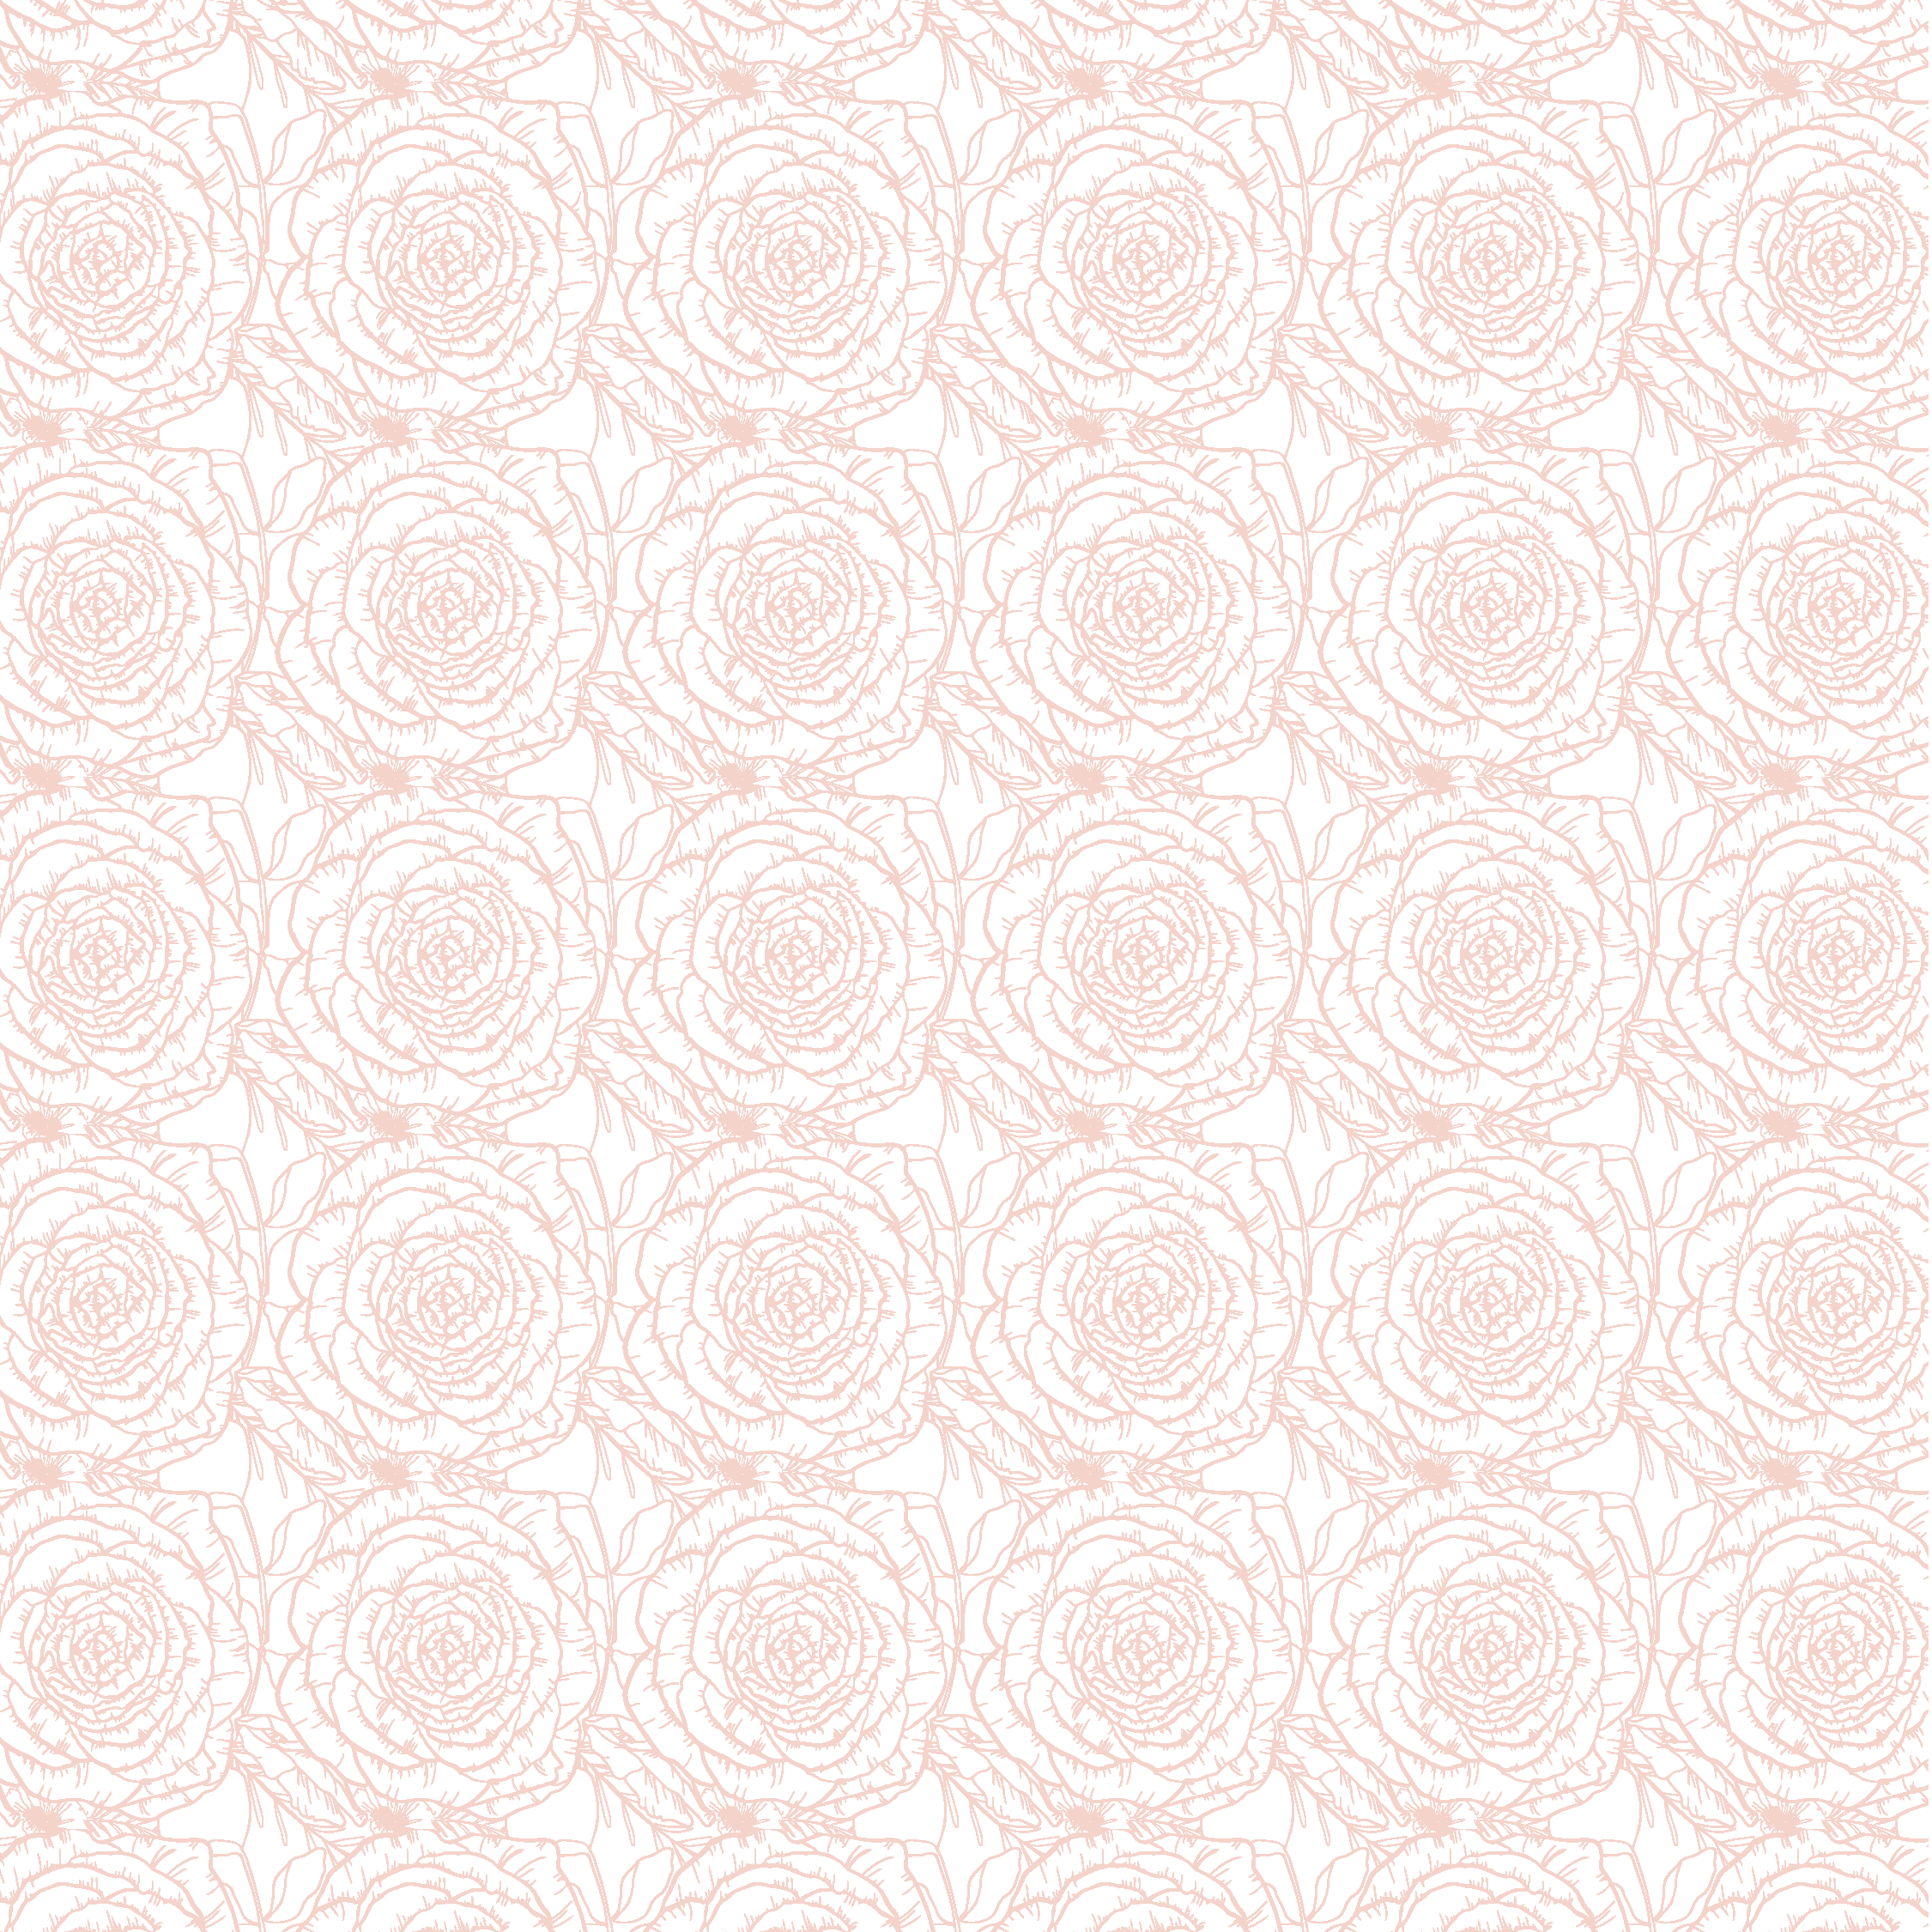 Bubbles and Blooms Katy Texas Florist pattern and logo design by Kindly by Kelsea